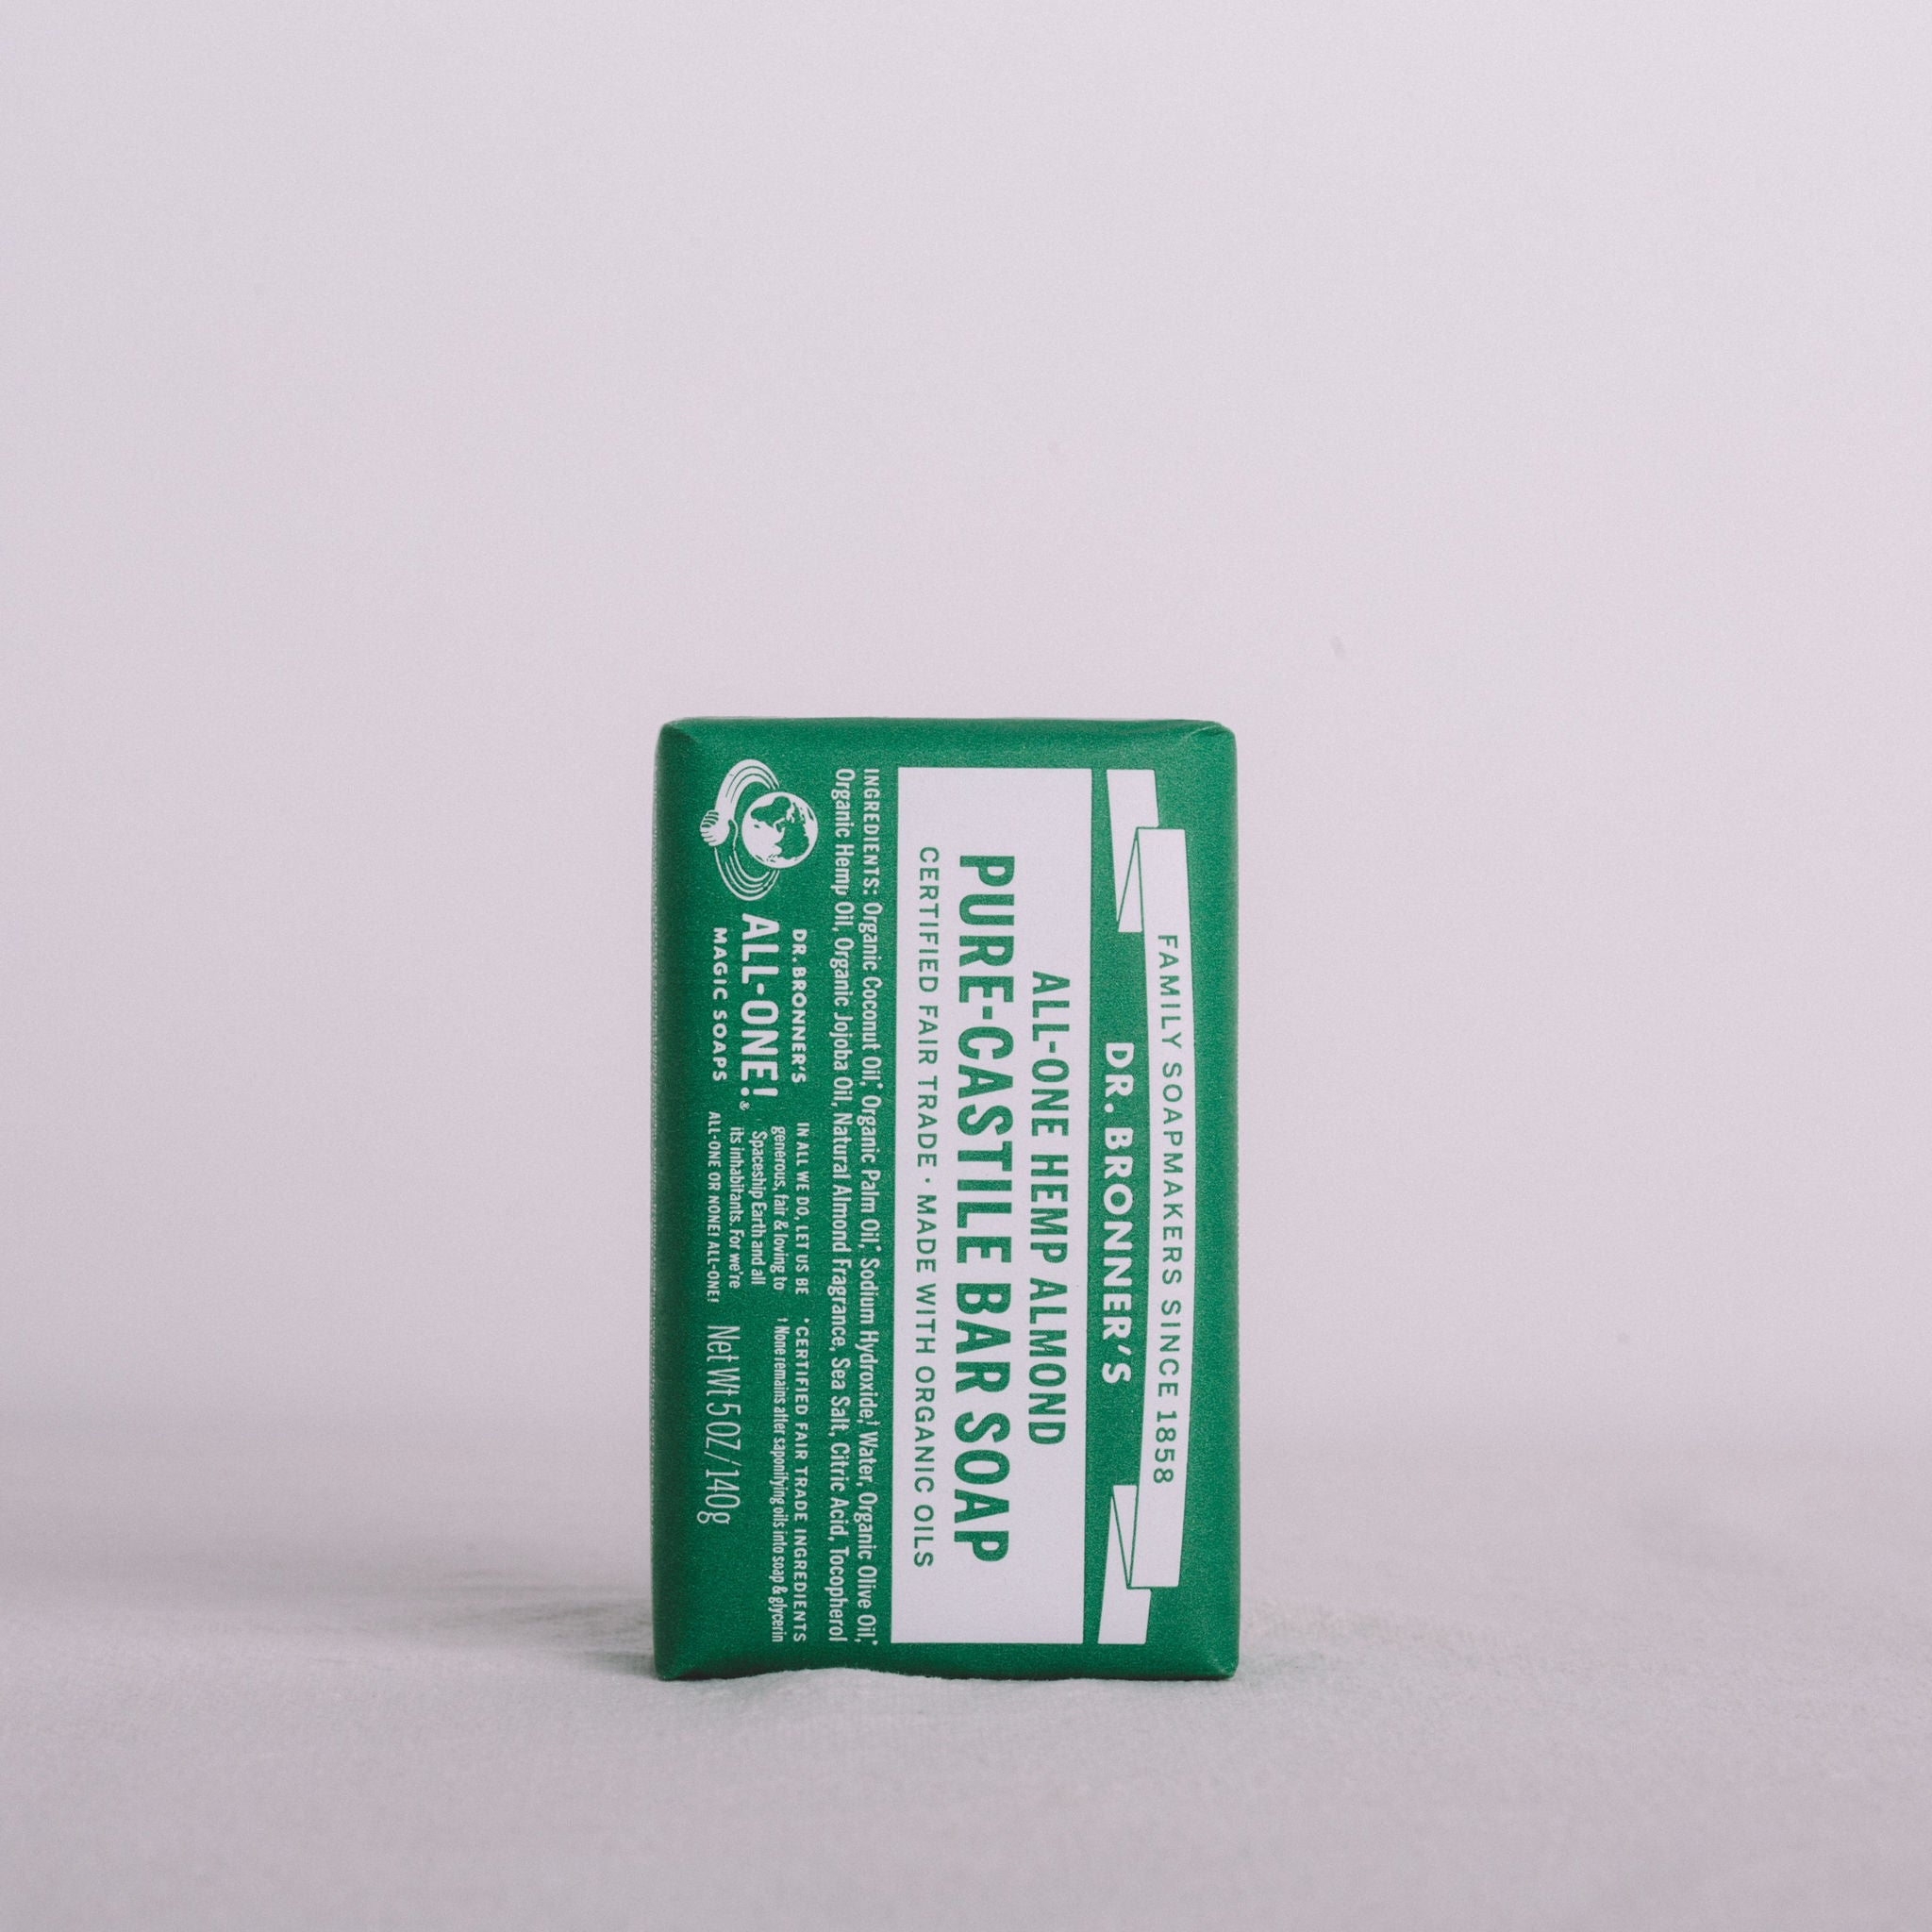 DR BRONNER'S || PURE-CASTILE BAR SOAP